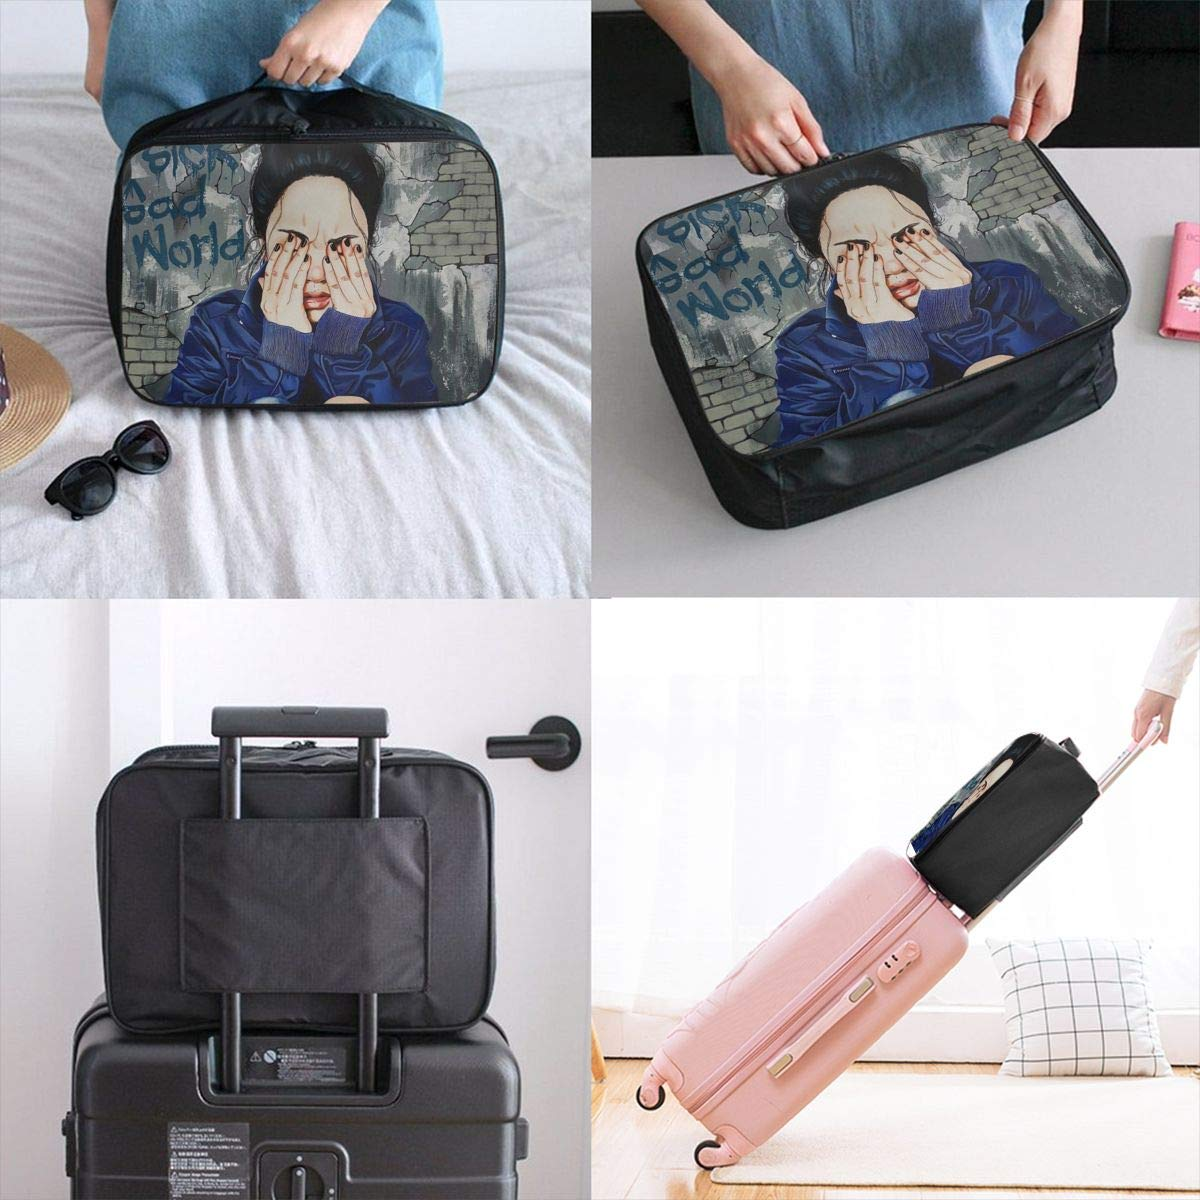 Gothic Sad Girl 90s Travel Lightweight Waterproof Folding Storage Carry Luggage Duffle Tote Bag Large Capacity In Trolley Handle Bags 6x11x15 Inch